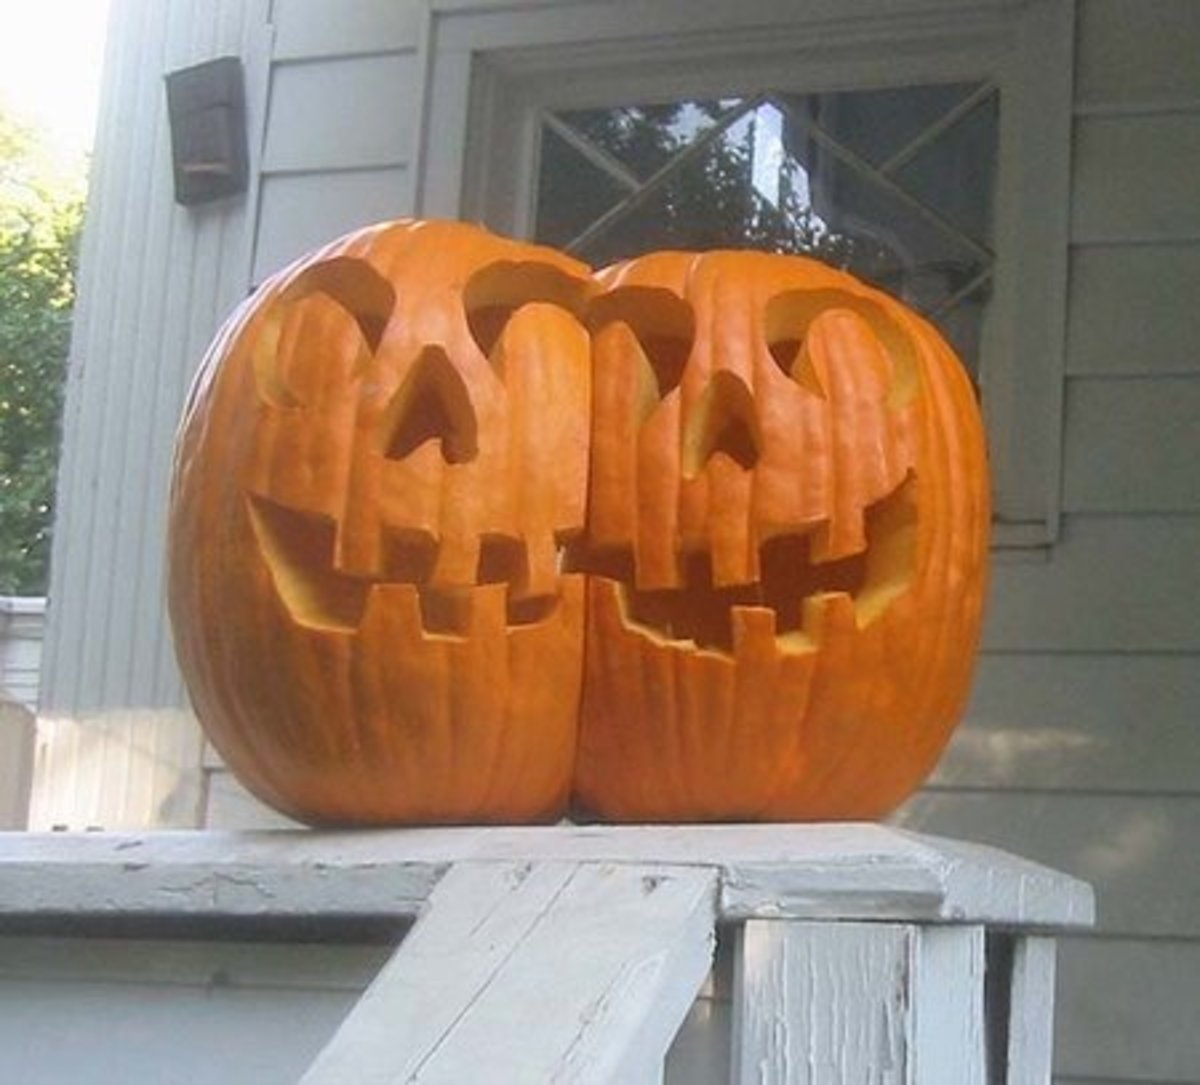 Conjoined twins pumpkins